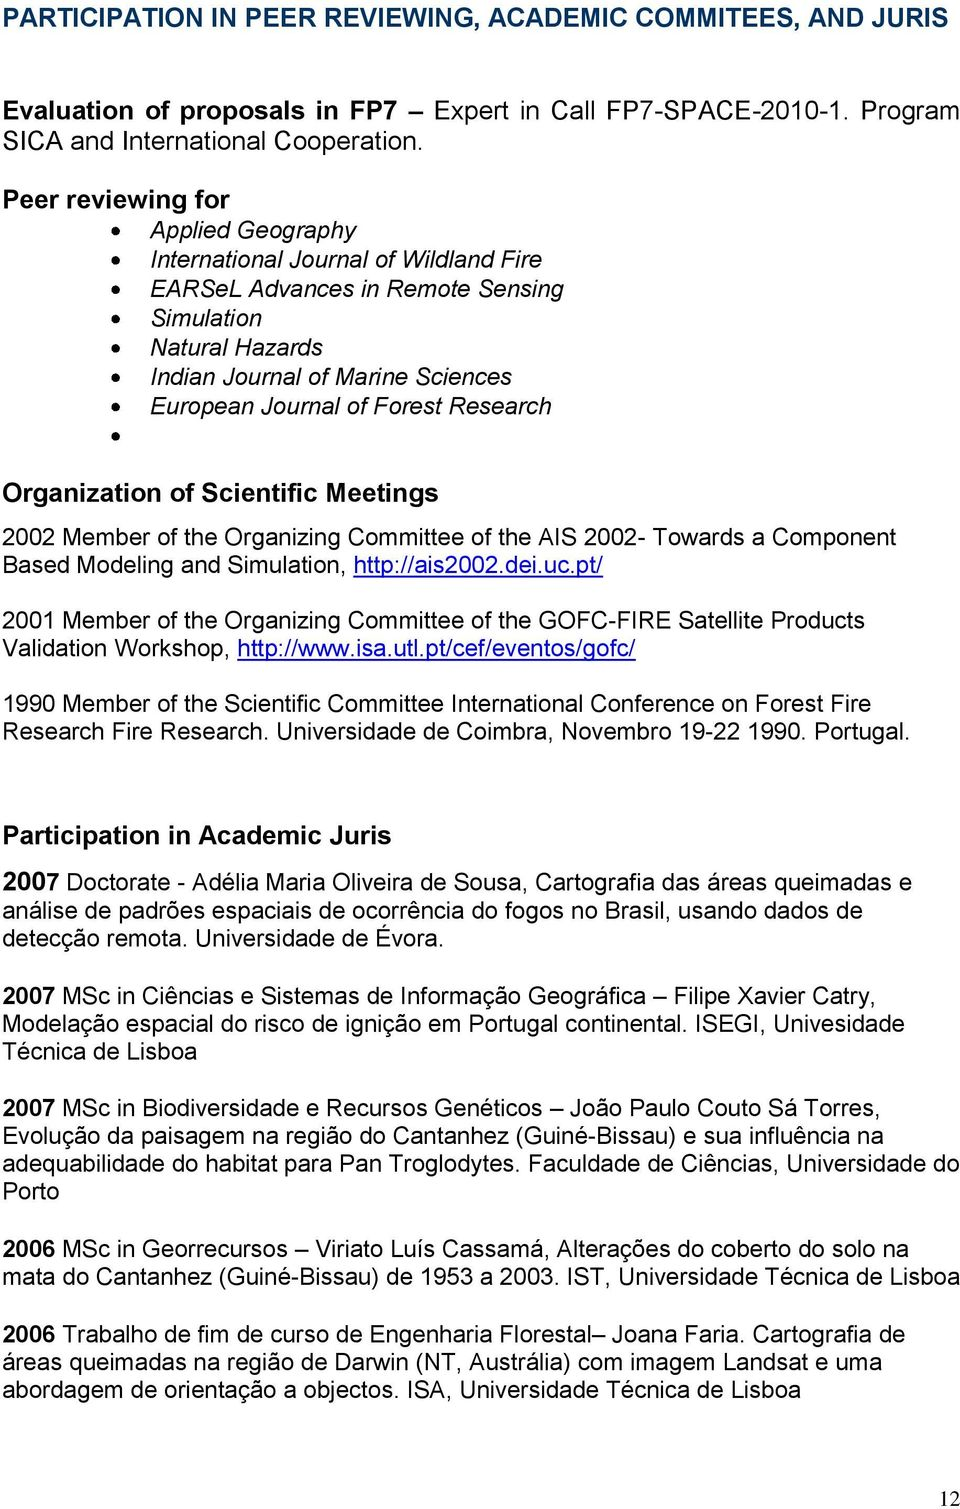 Research Organization of Scientific Meetings 2002 Member of the Organizing Committee of the AIS 2002- Towards a Component Based Modeling and Simulation, http://ais2002.dei.uc.